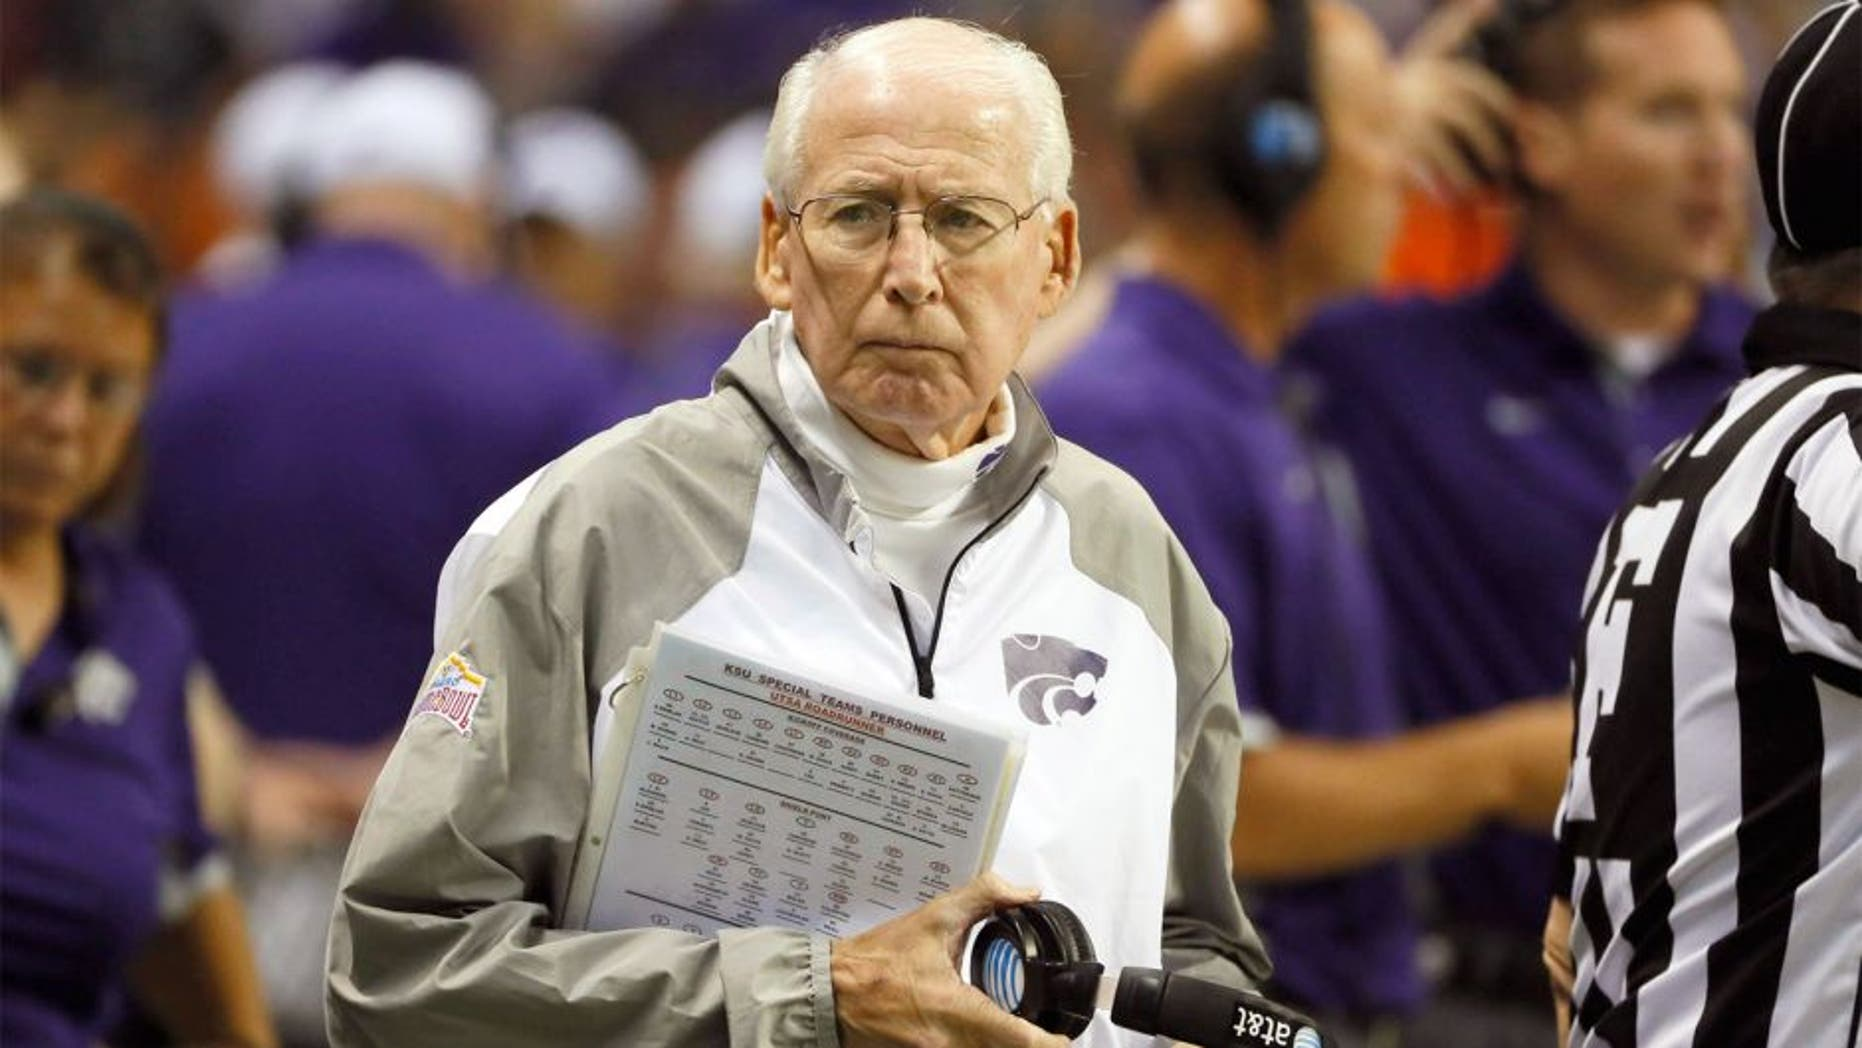 Sep 12, 2015; San Antonio, TX, USA; Kansas State Wildcats head coach Bill Snyder looks on prior to the game against the UTSA Roadrunners at Alamodome. Mandatory Credit: Soobum Im-USA TODAY Sports